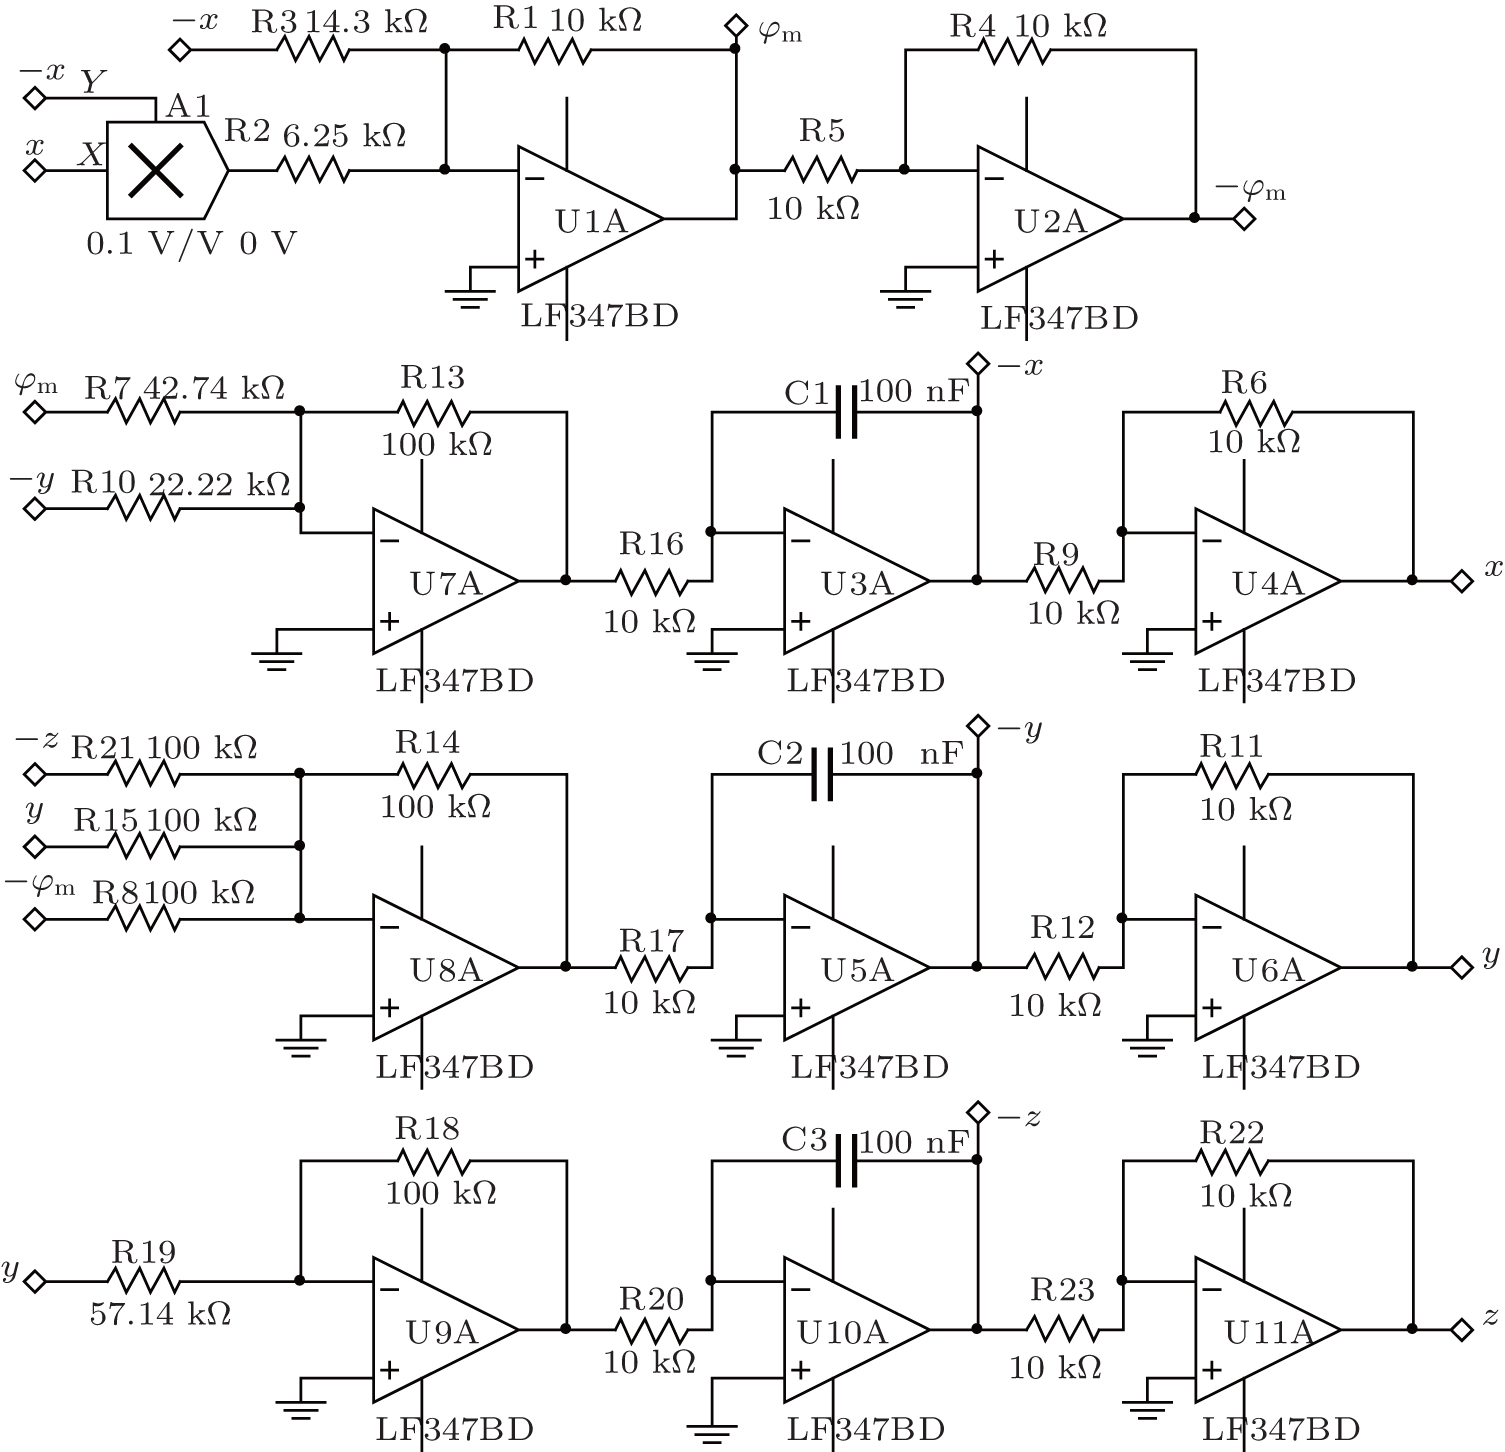 Memcapacitor Model And Its Application In A Chaotic Oscillator Circuit Diagram Oscillatorcircuit Signalprocessing View Download New Window